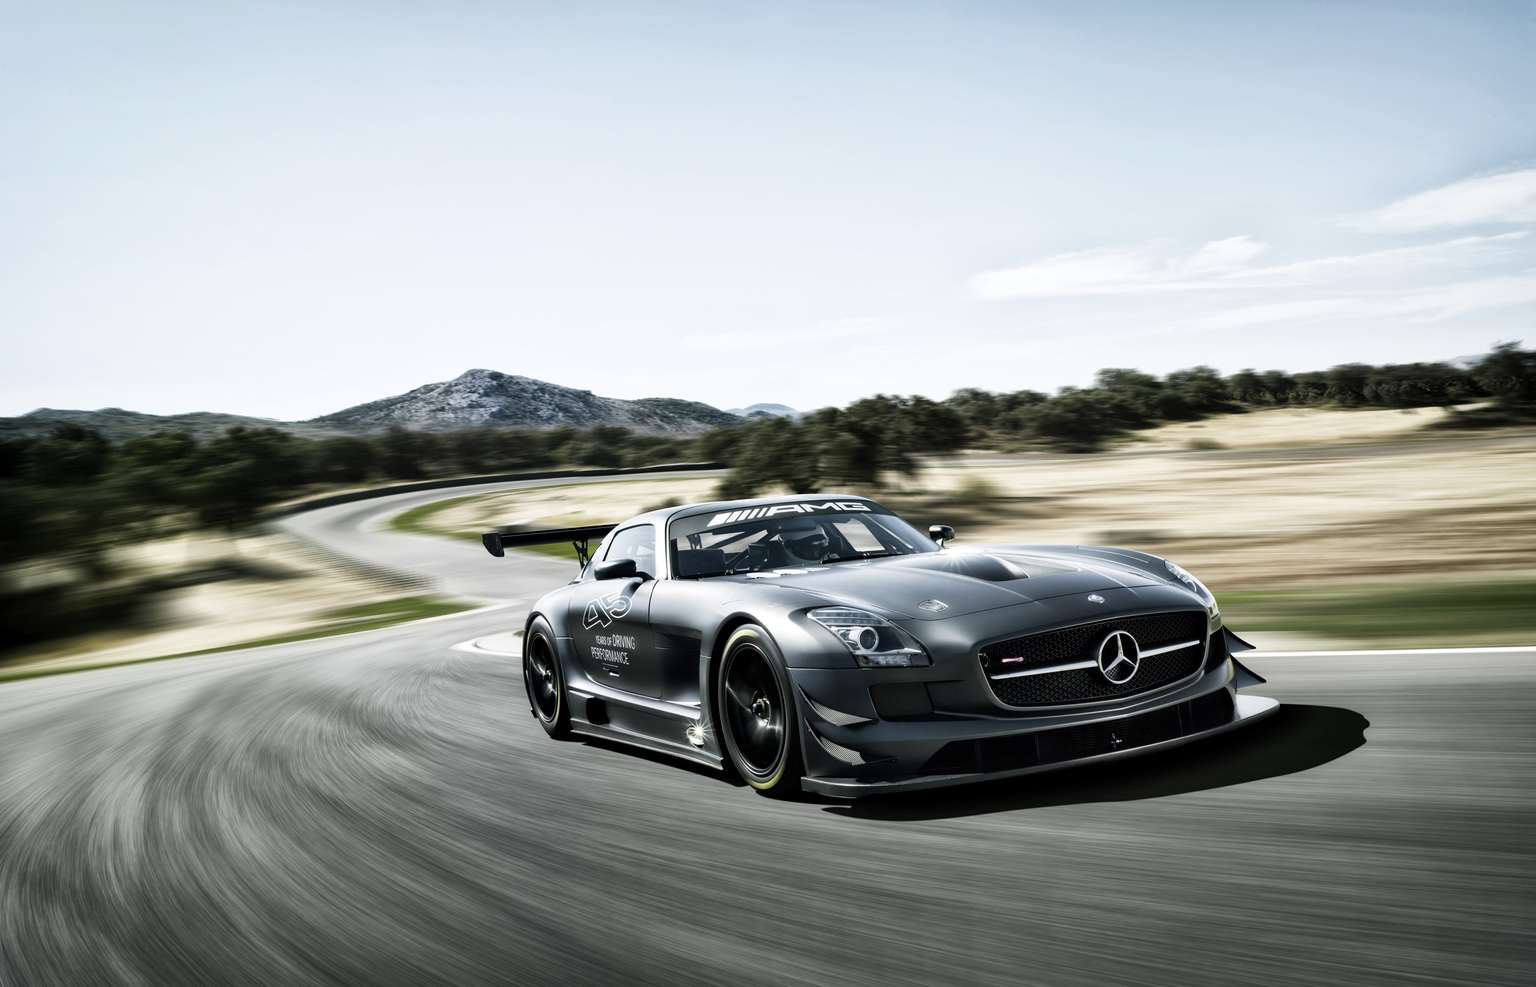 2012 mercedes benz sls amg gt3 45th anniversary for Mercedes benz sls amg gt3 price